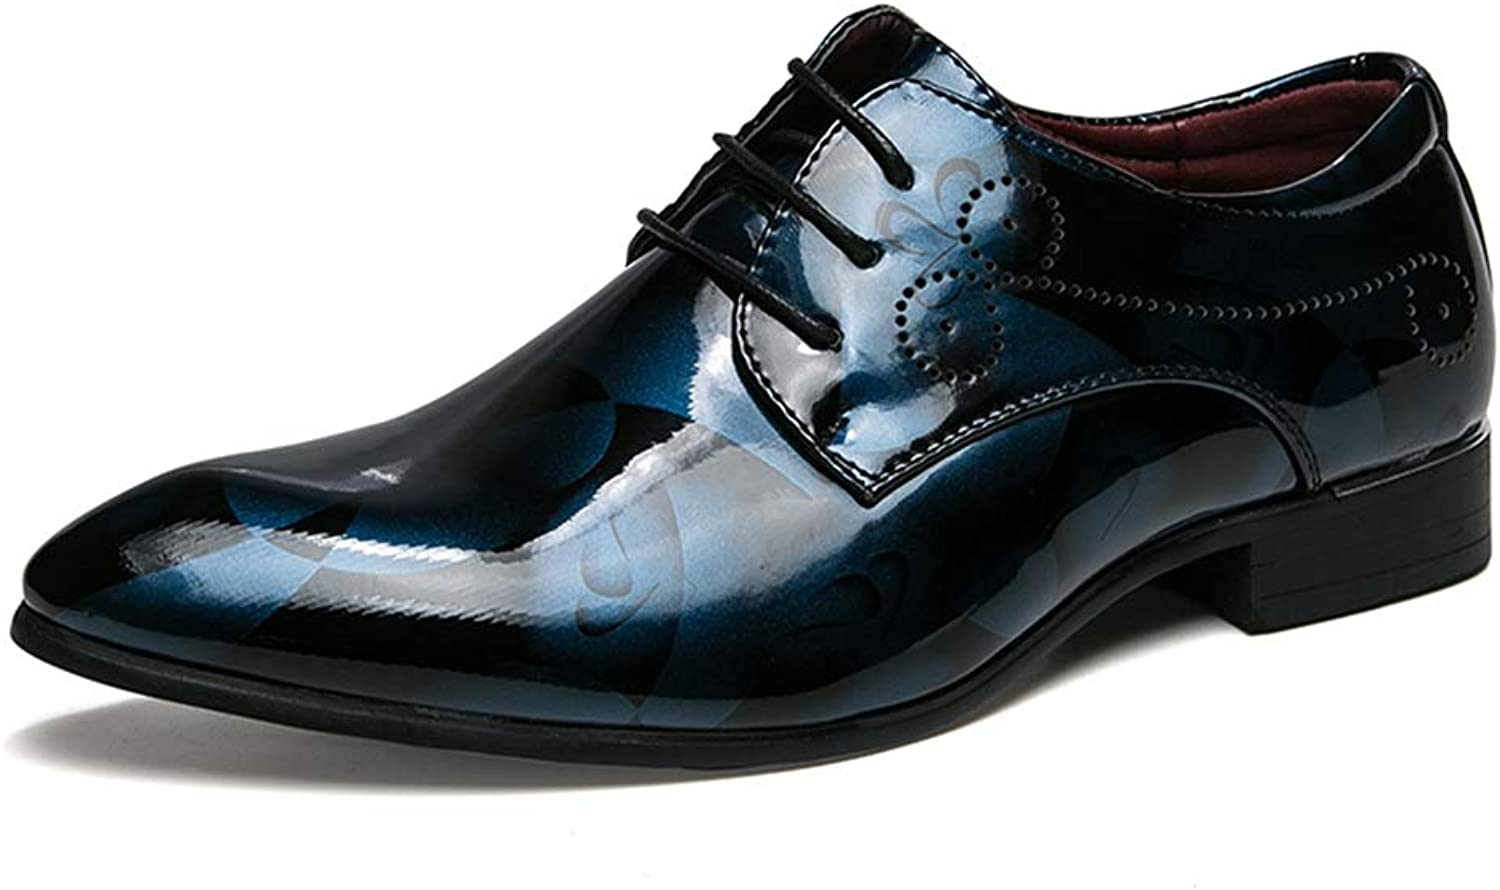 CHENXD shoes, Men's Fashion Anti-Skid Lace Up Pointed Toe Business Oxford Casual Patent Leather Formal shoes